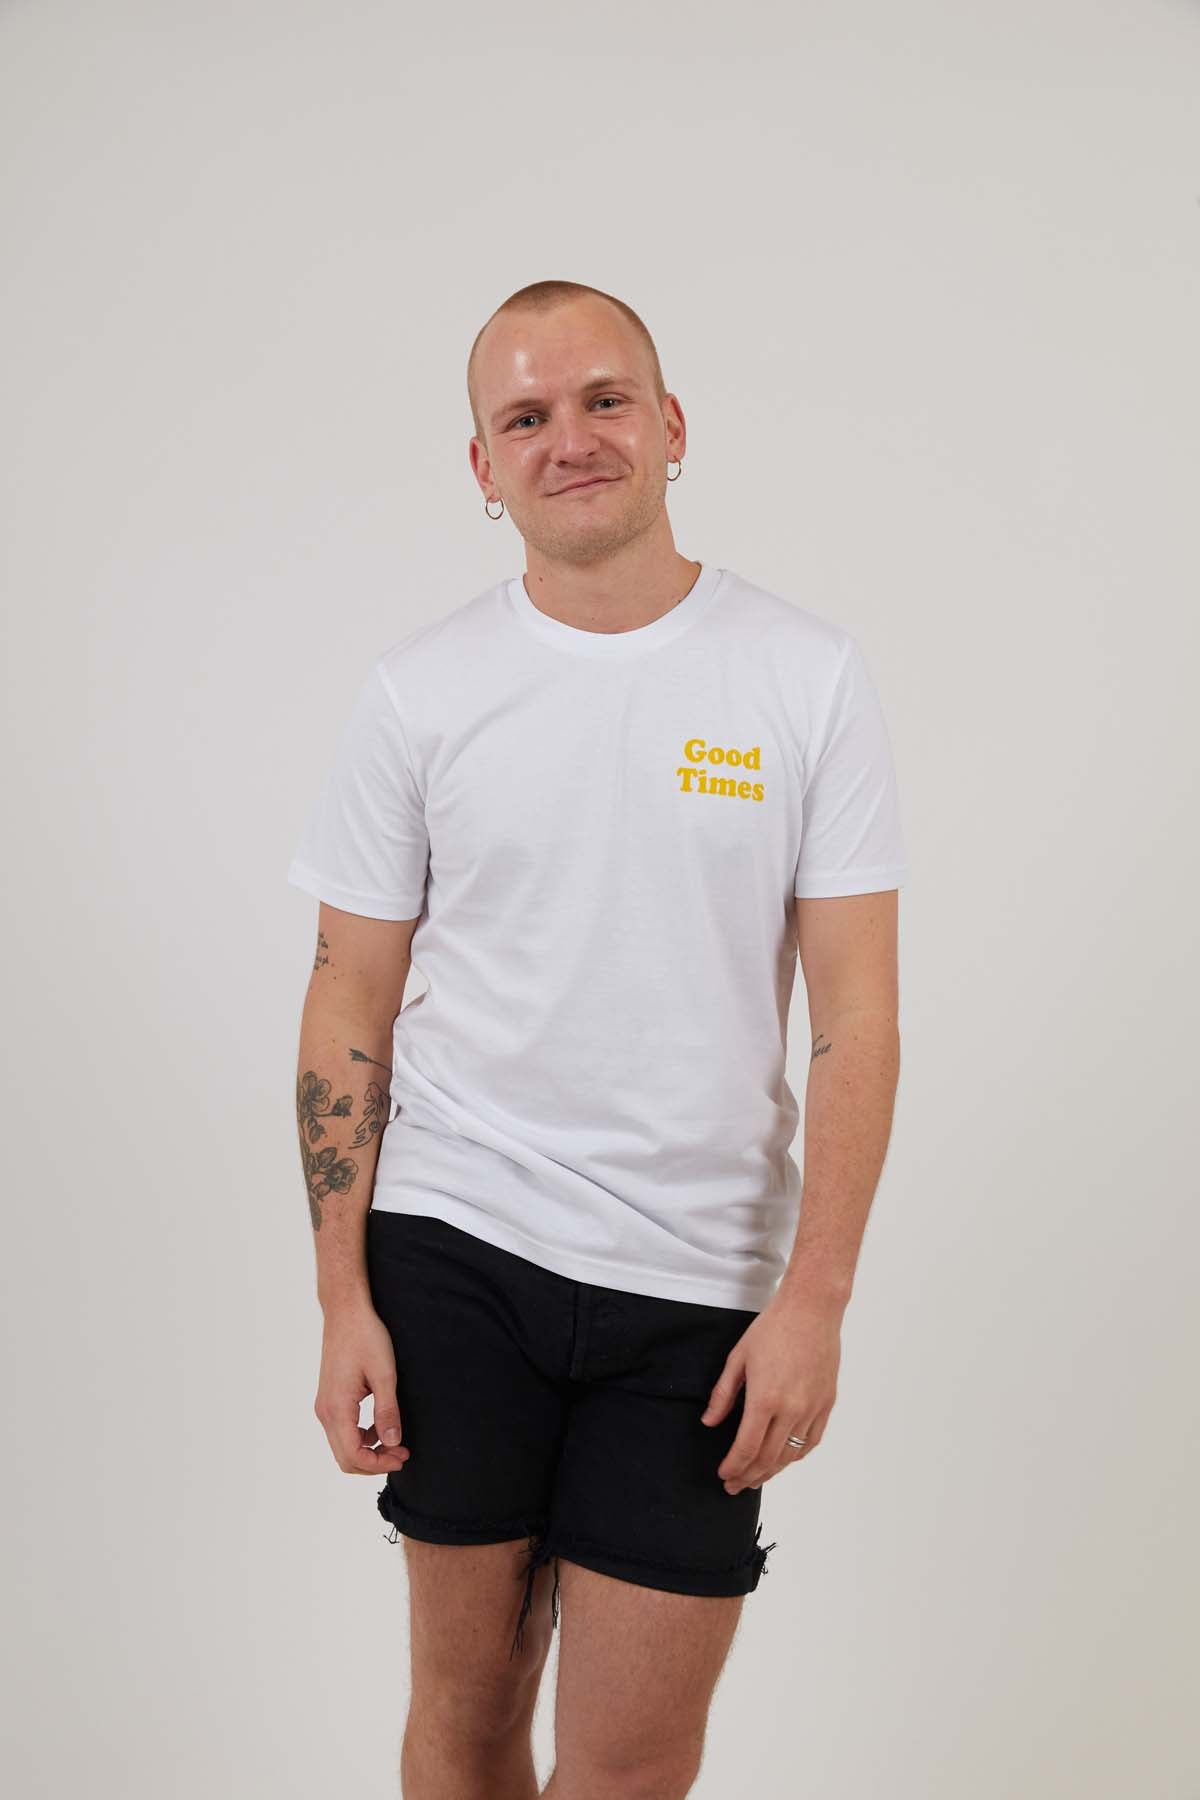 Good Times Logo - Mens Print Tee - White/Yellow